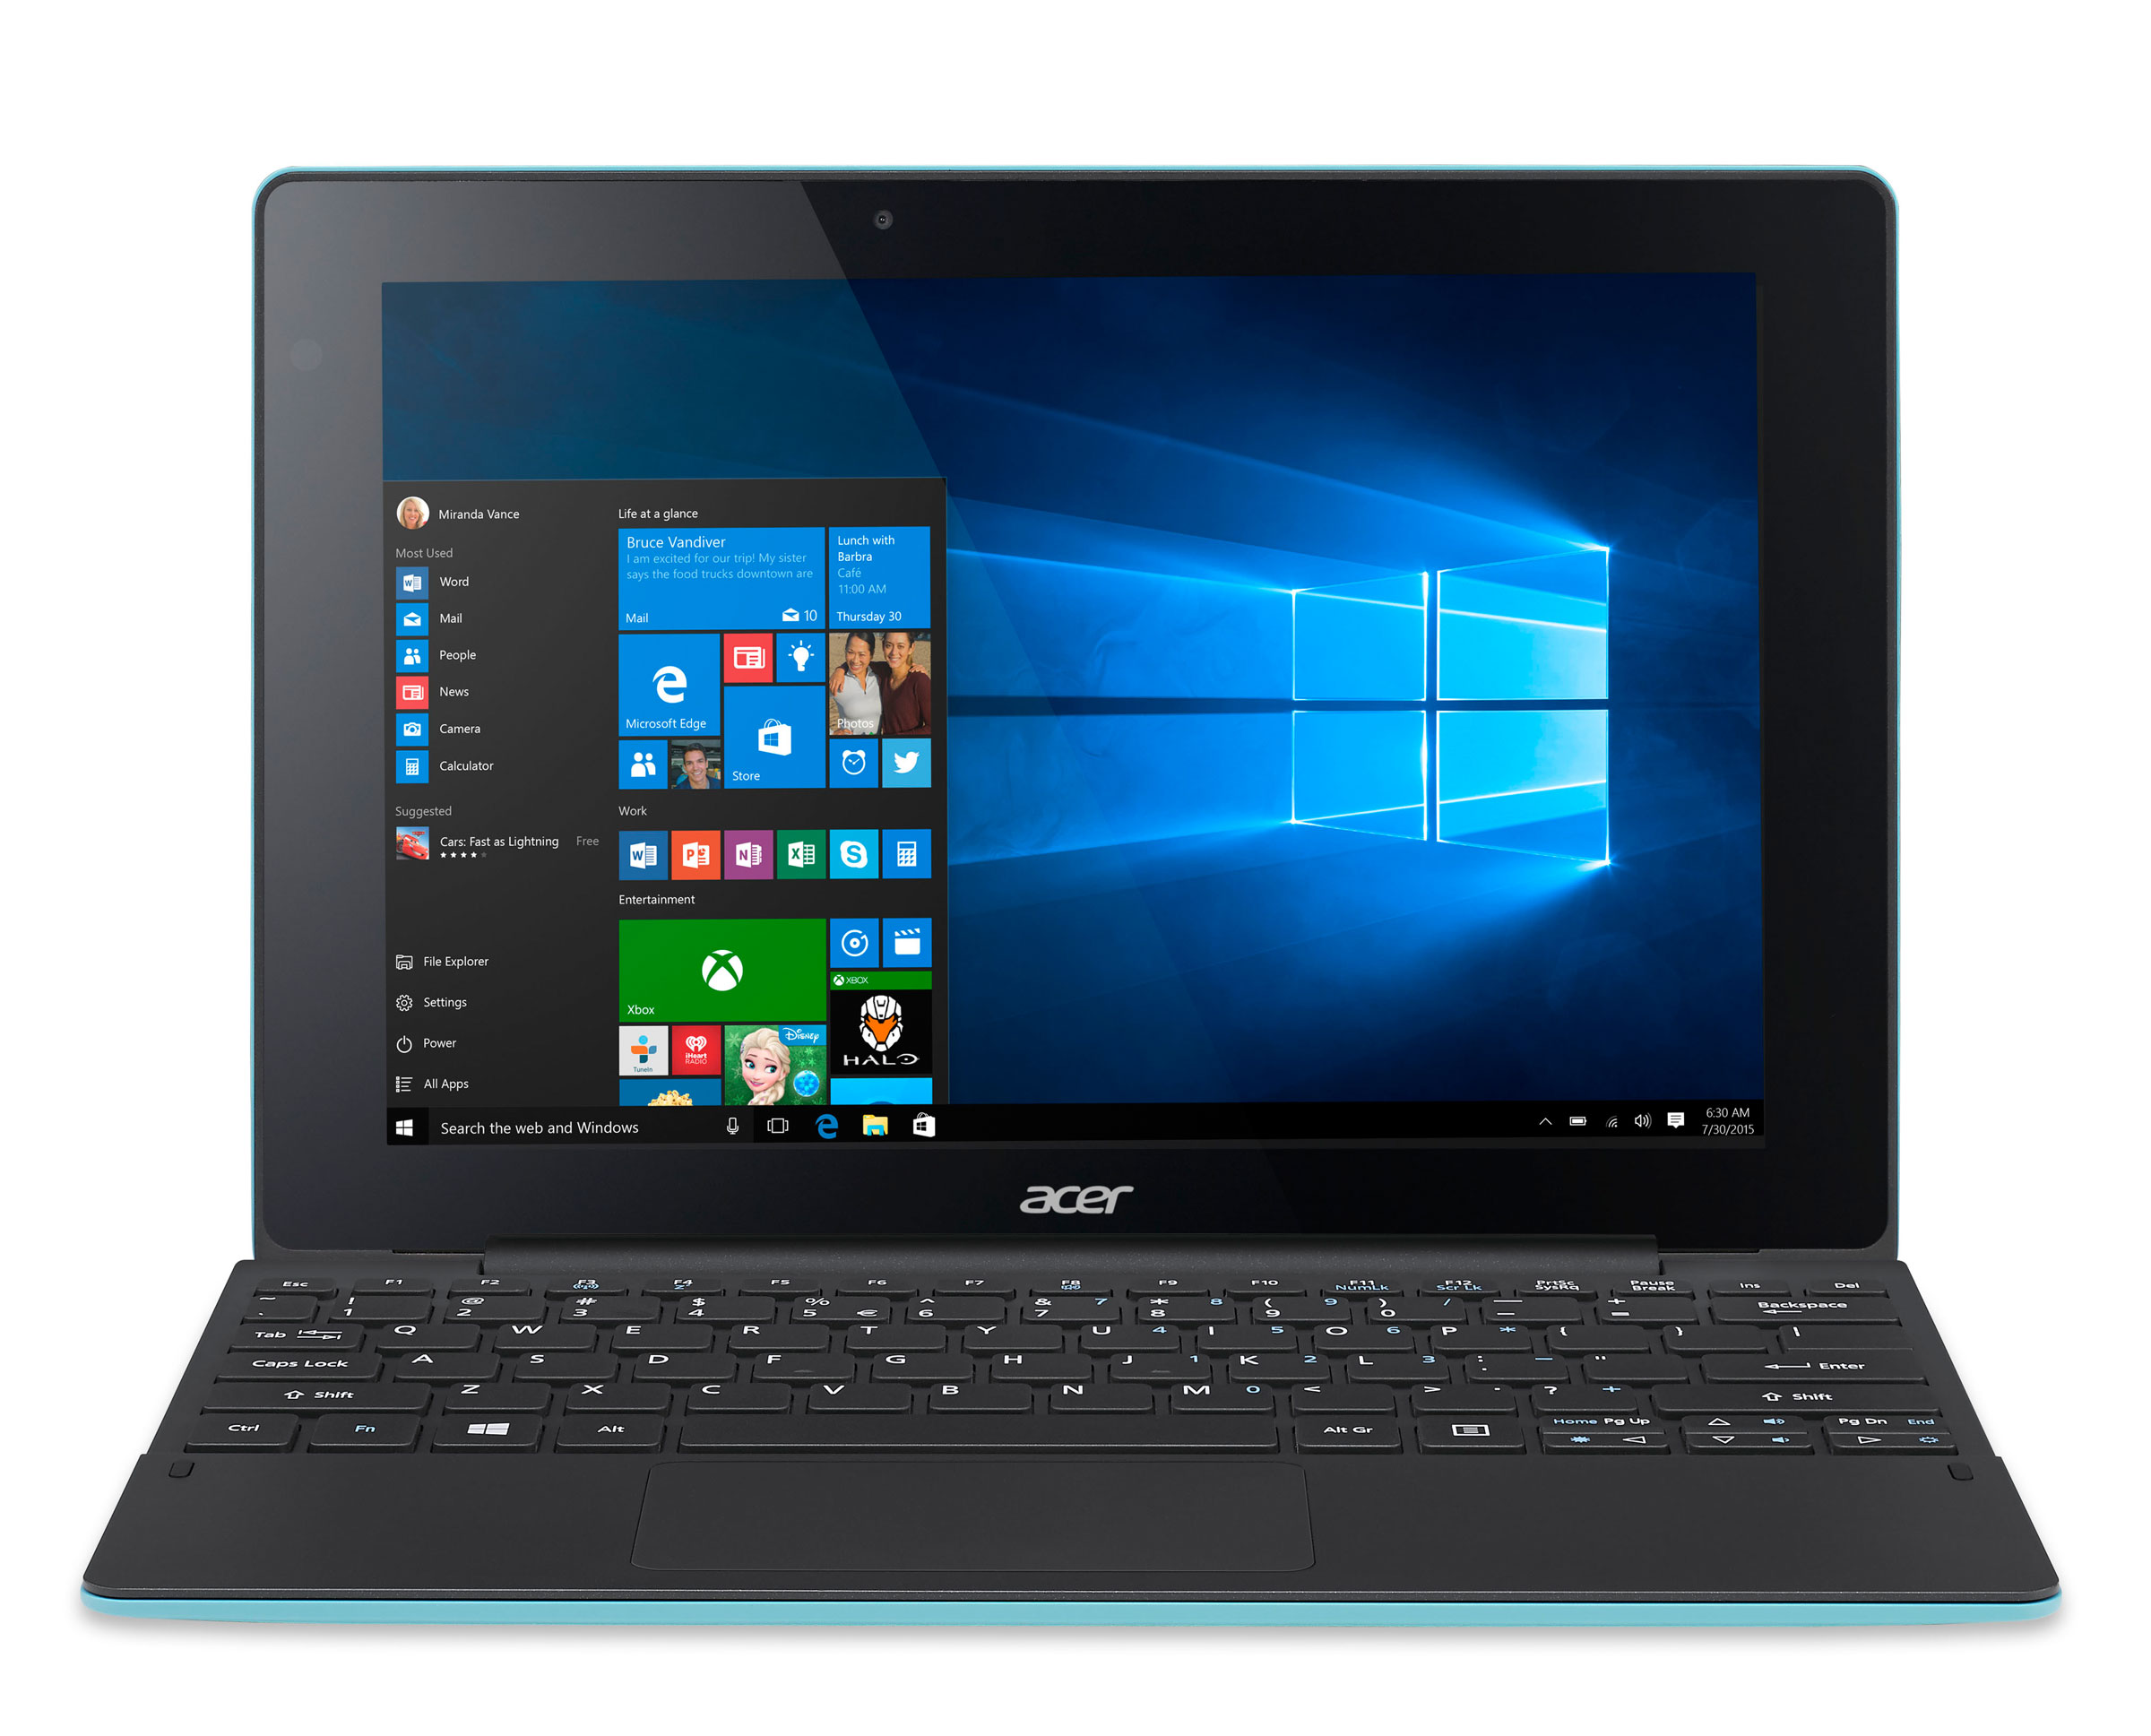 Acer Switch 10 E Intel Atom Processor 2GB RAM 32GB eMMC SSD 101 Touchscreen 2 in1 Laptop